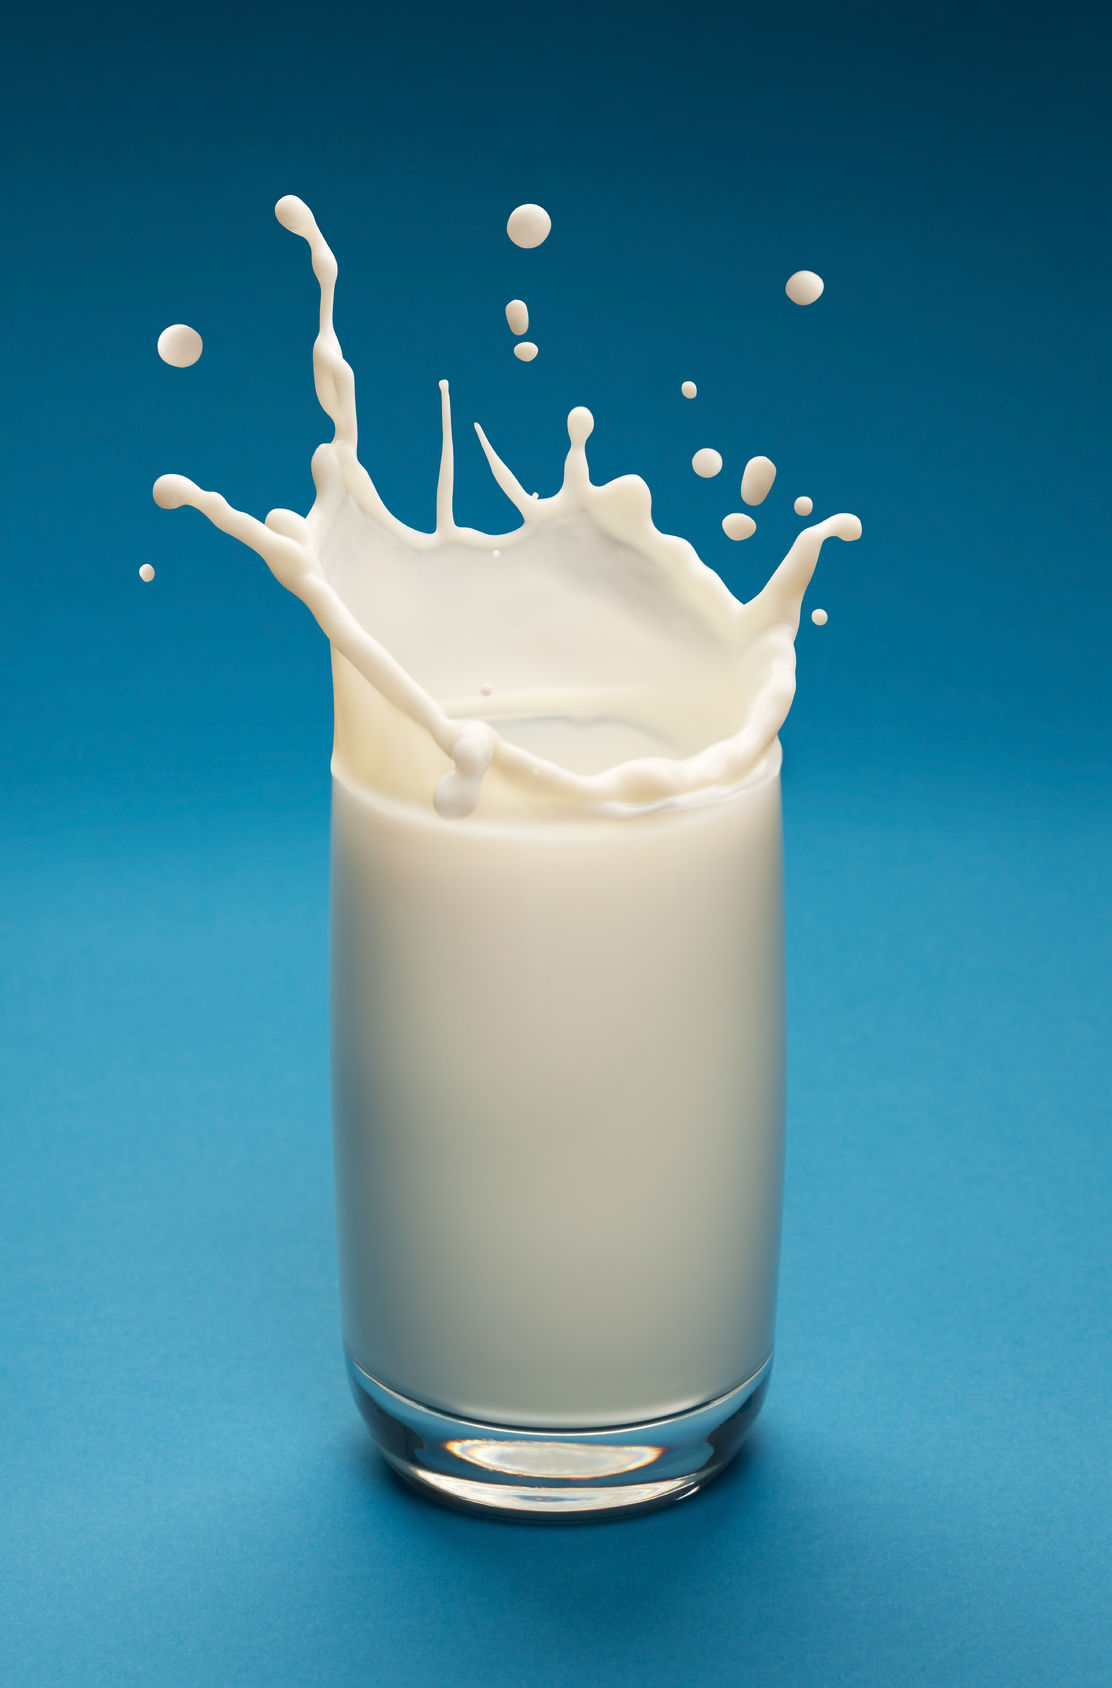 milk does not prevent osteoporosis